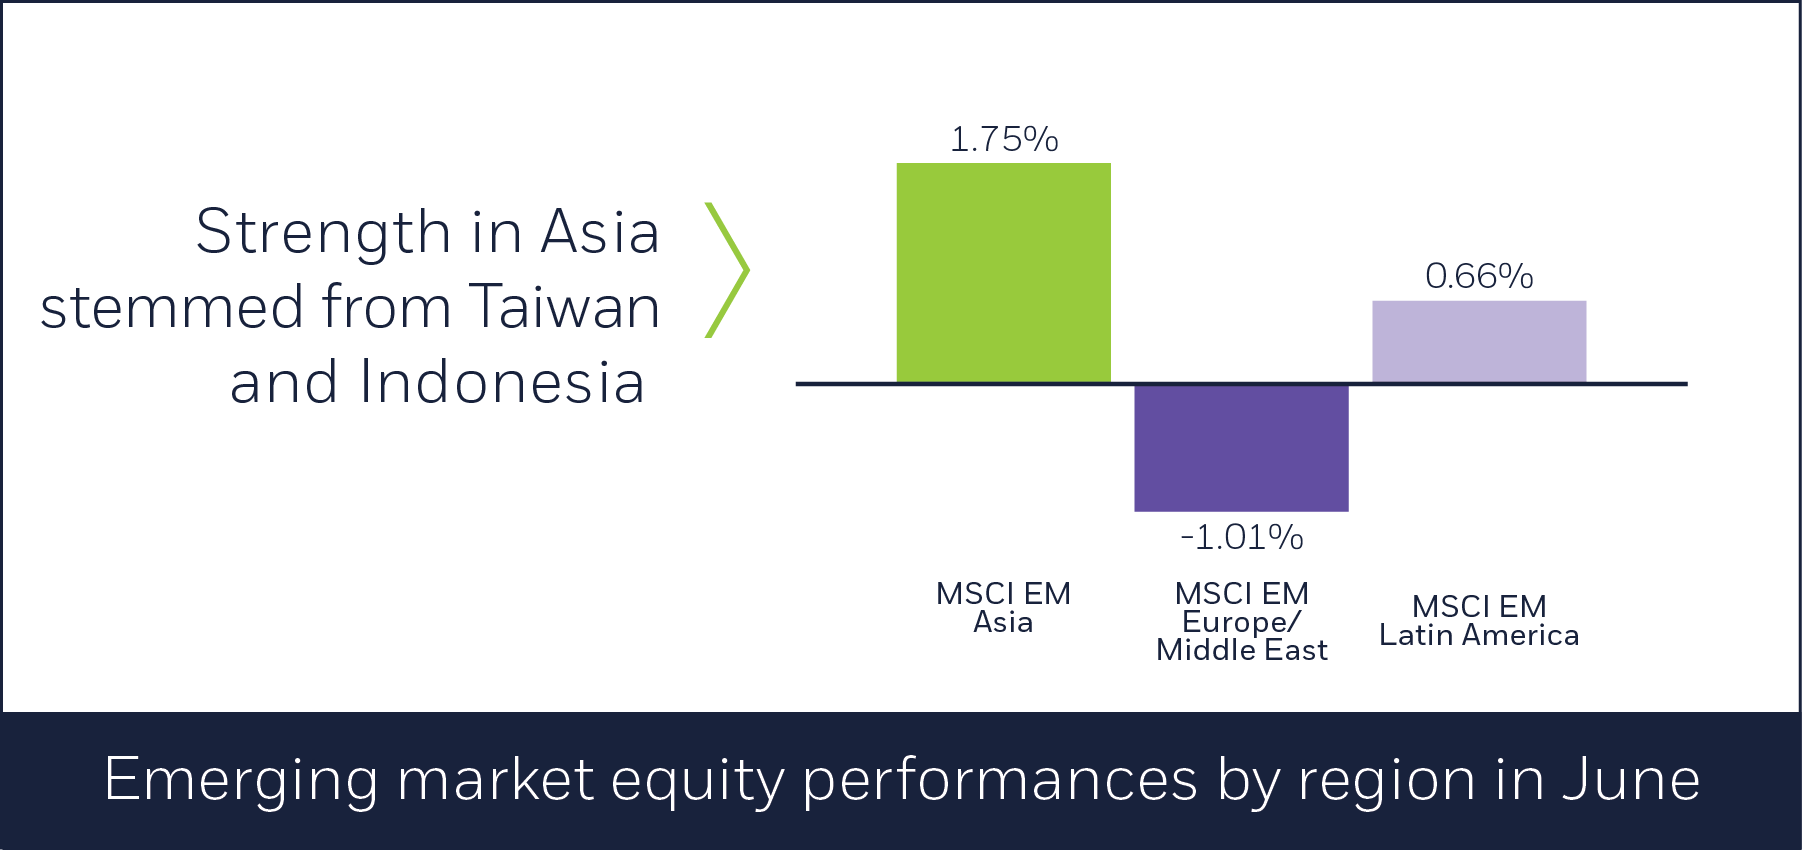 Emerging market equity performances by region in June